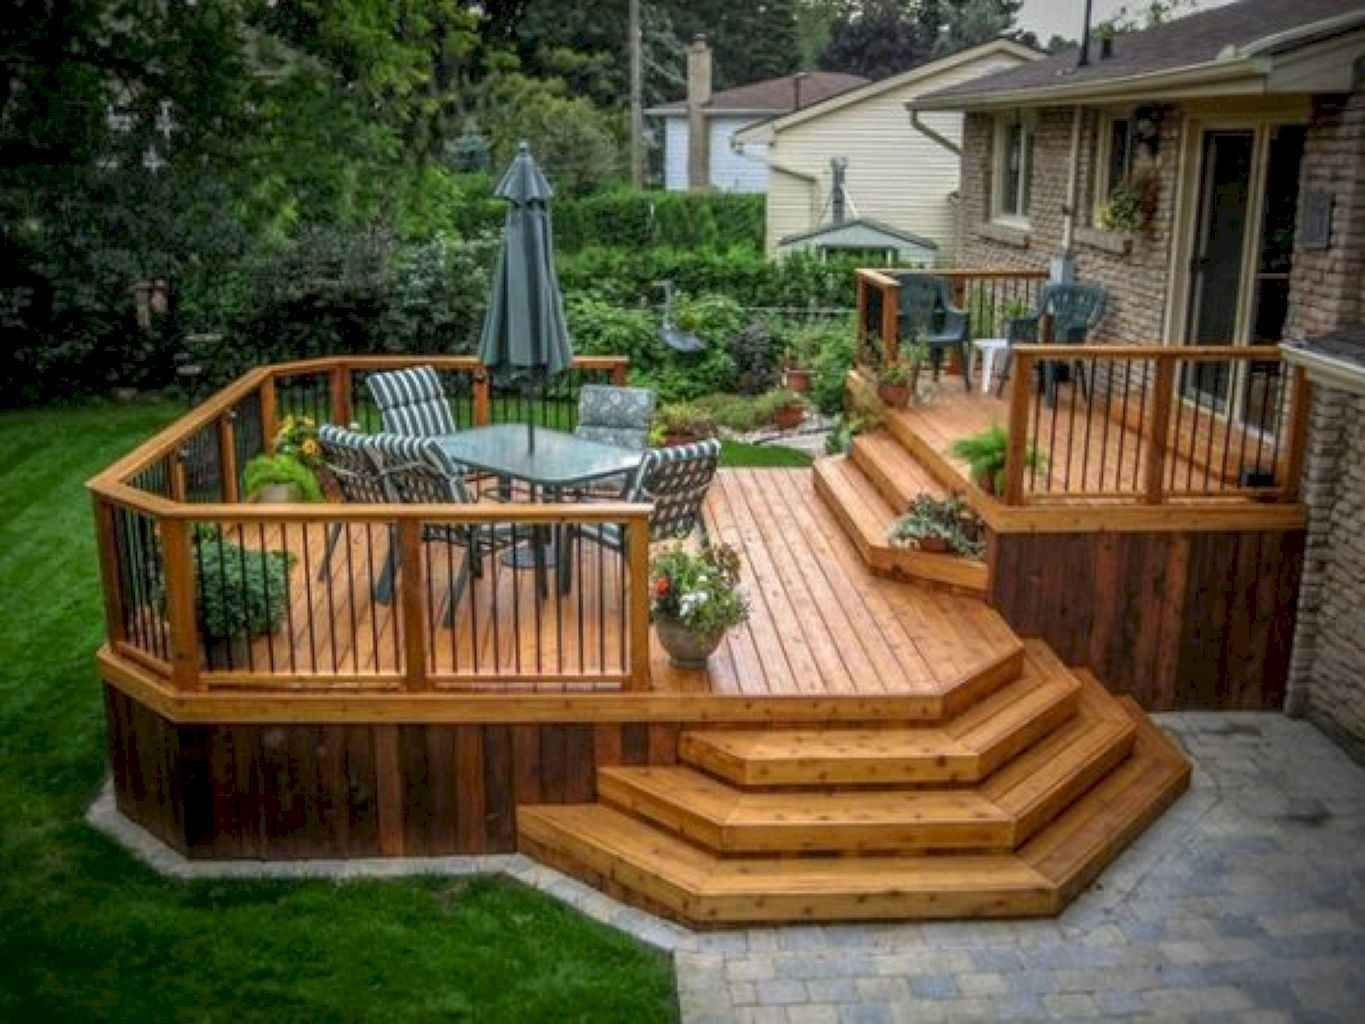 28 wonderful backyard patio and decking ideas to inspire on modern deck patio ideas for backyard design and decoration ideas id=30960